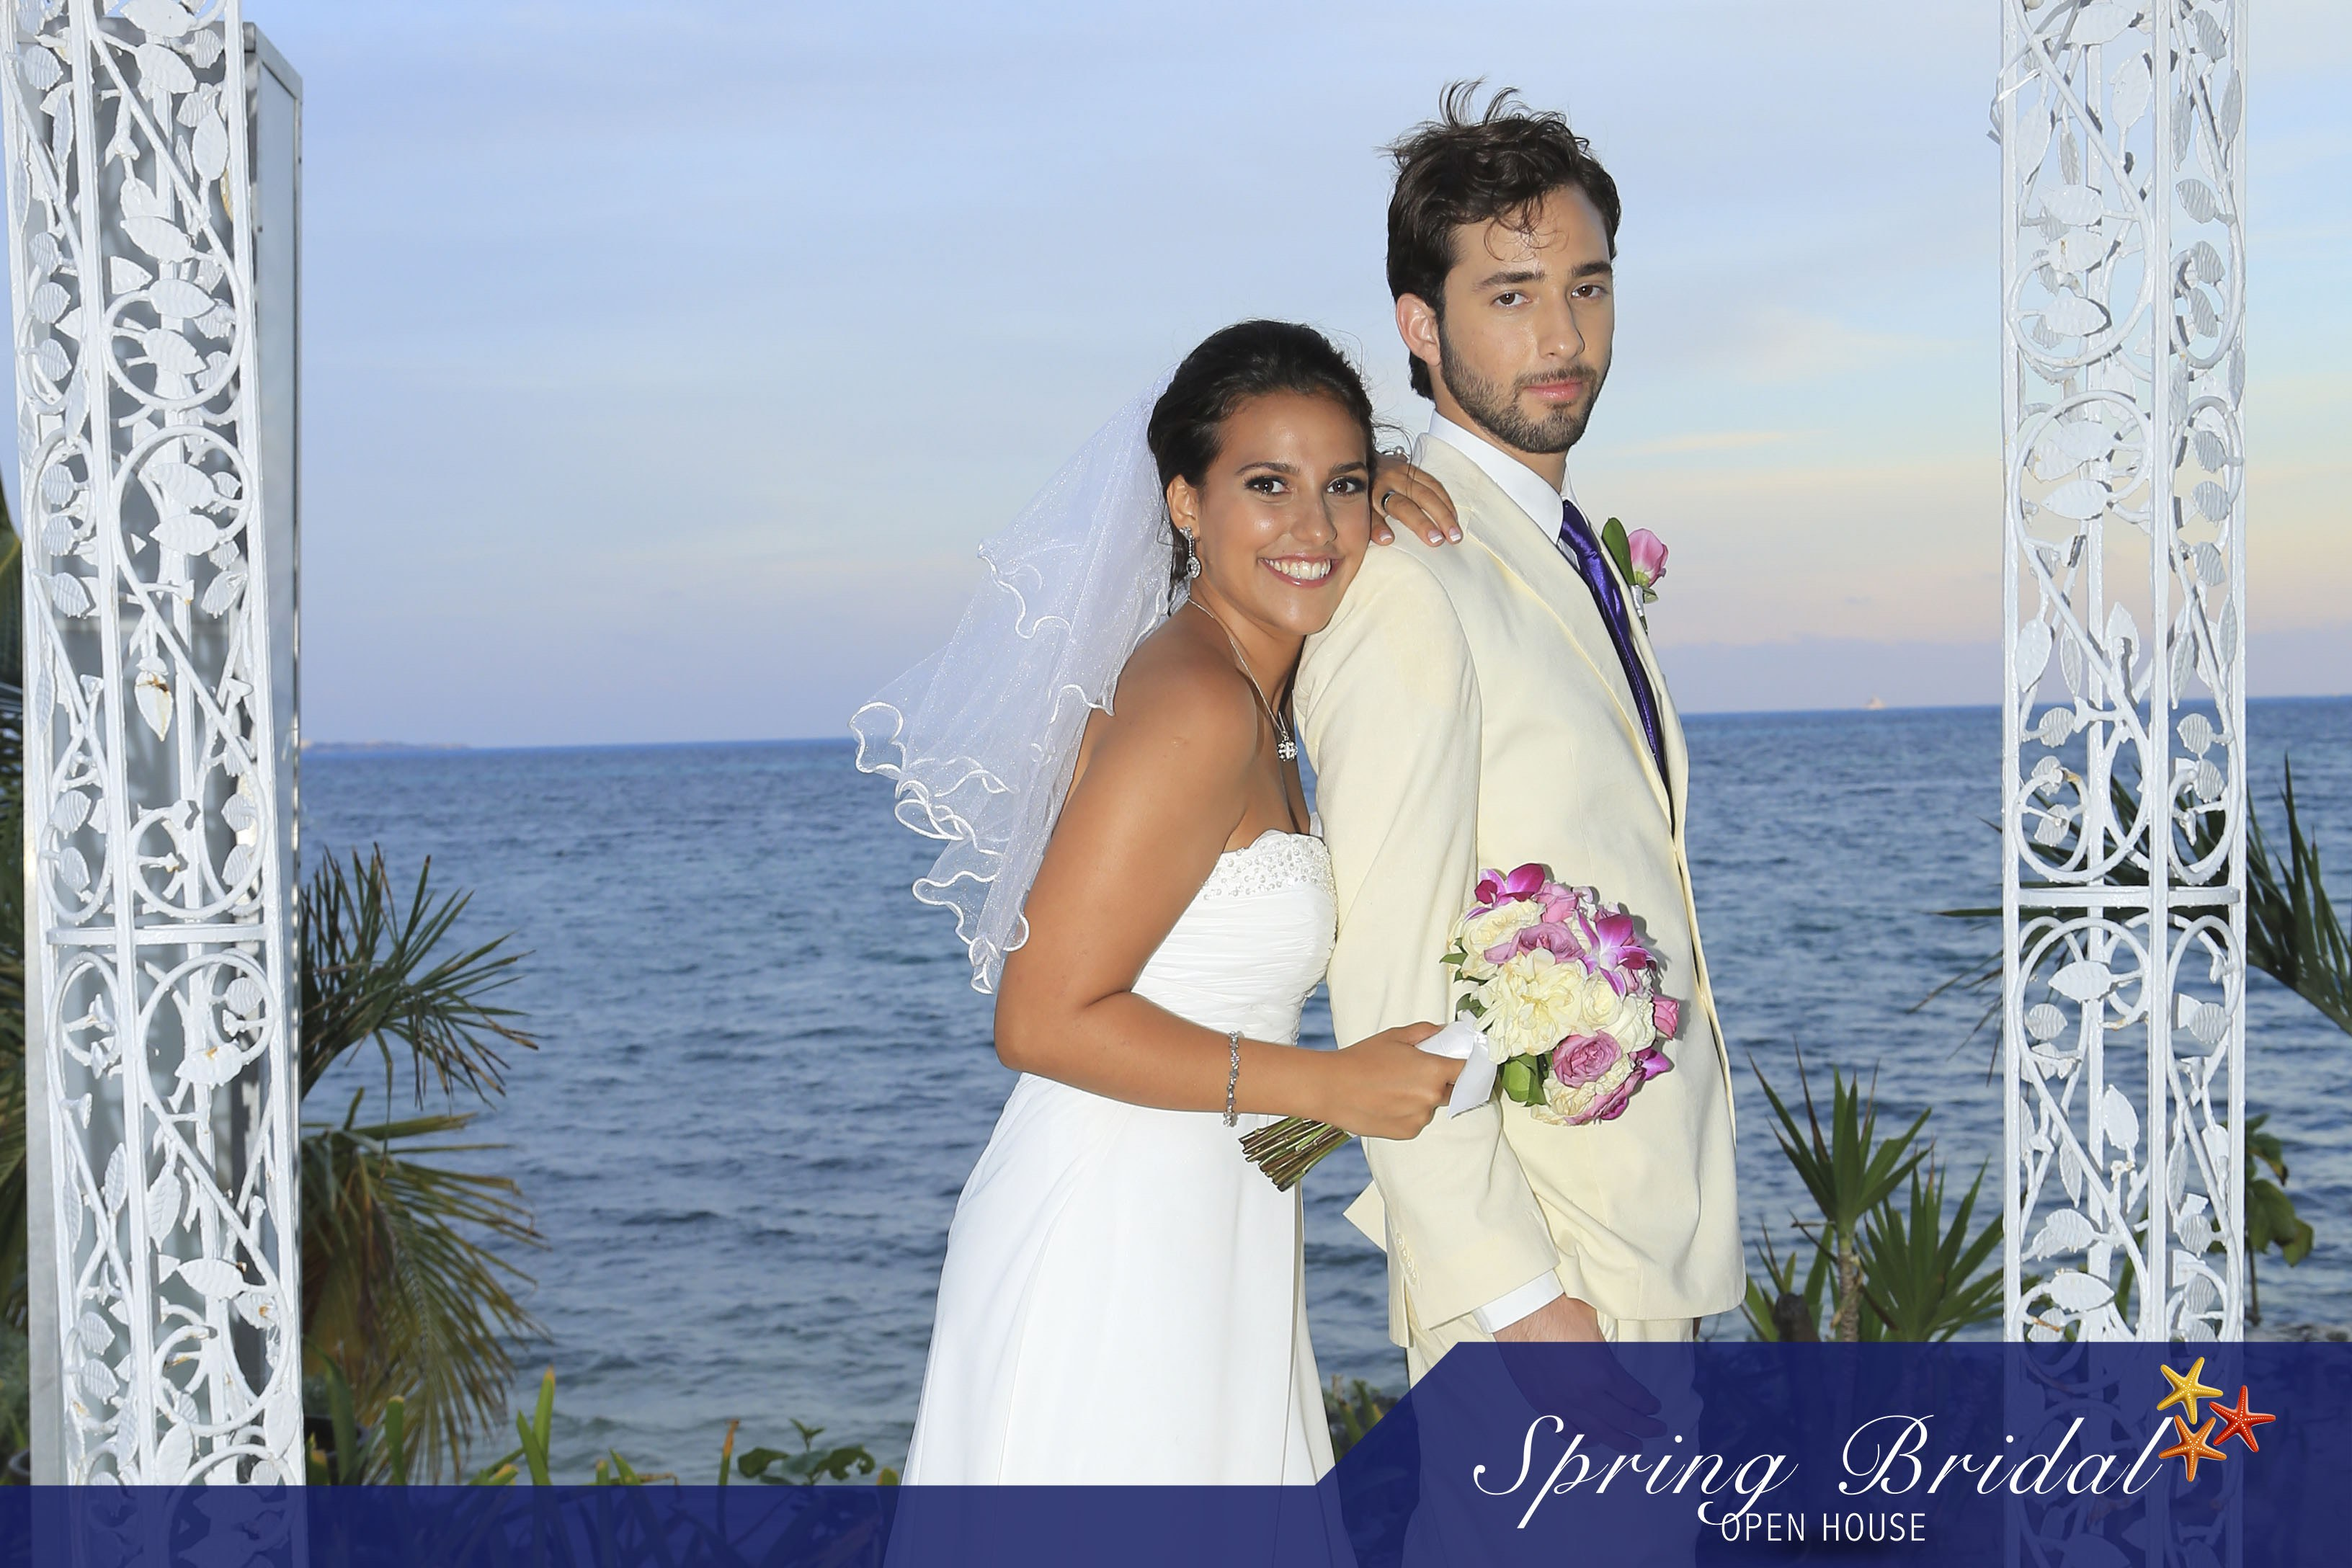 Novios Spring-Bridal-2015 con la espectacular vista en Ocean Weddings